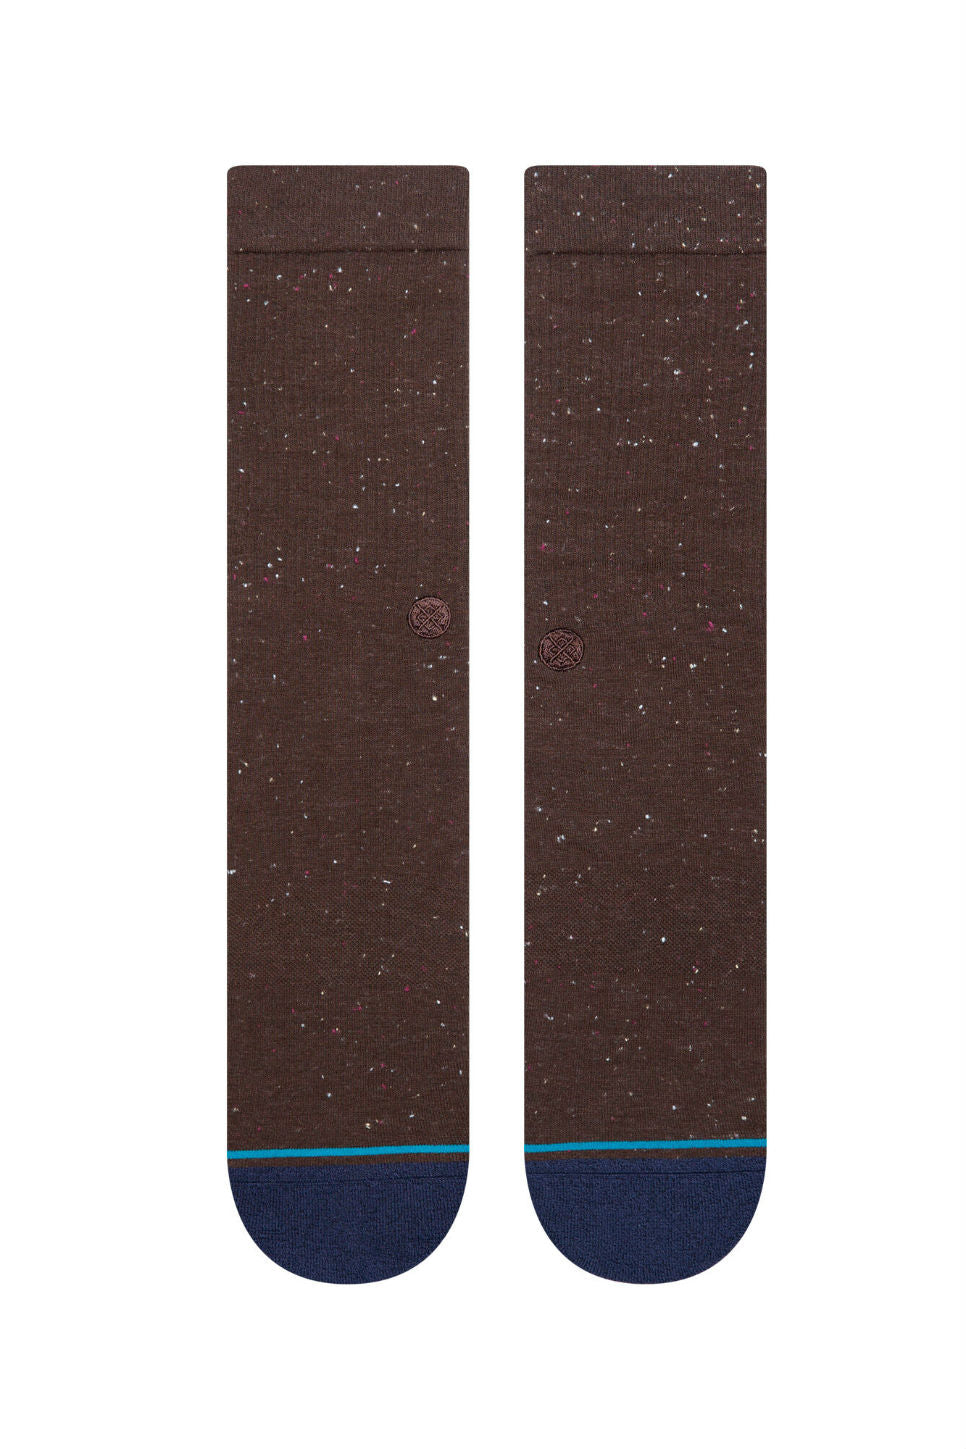 Stance - Icon 2 - Brown - Front